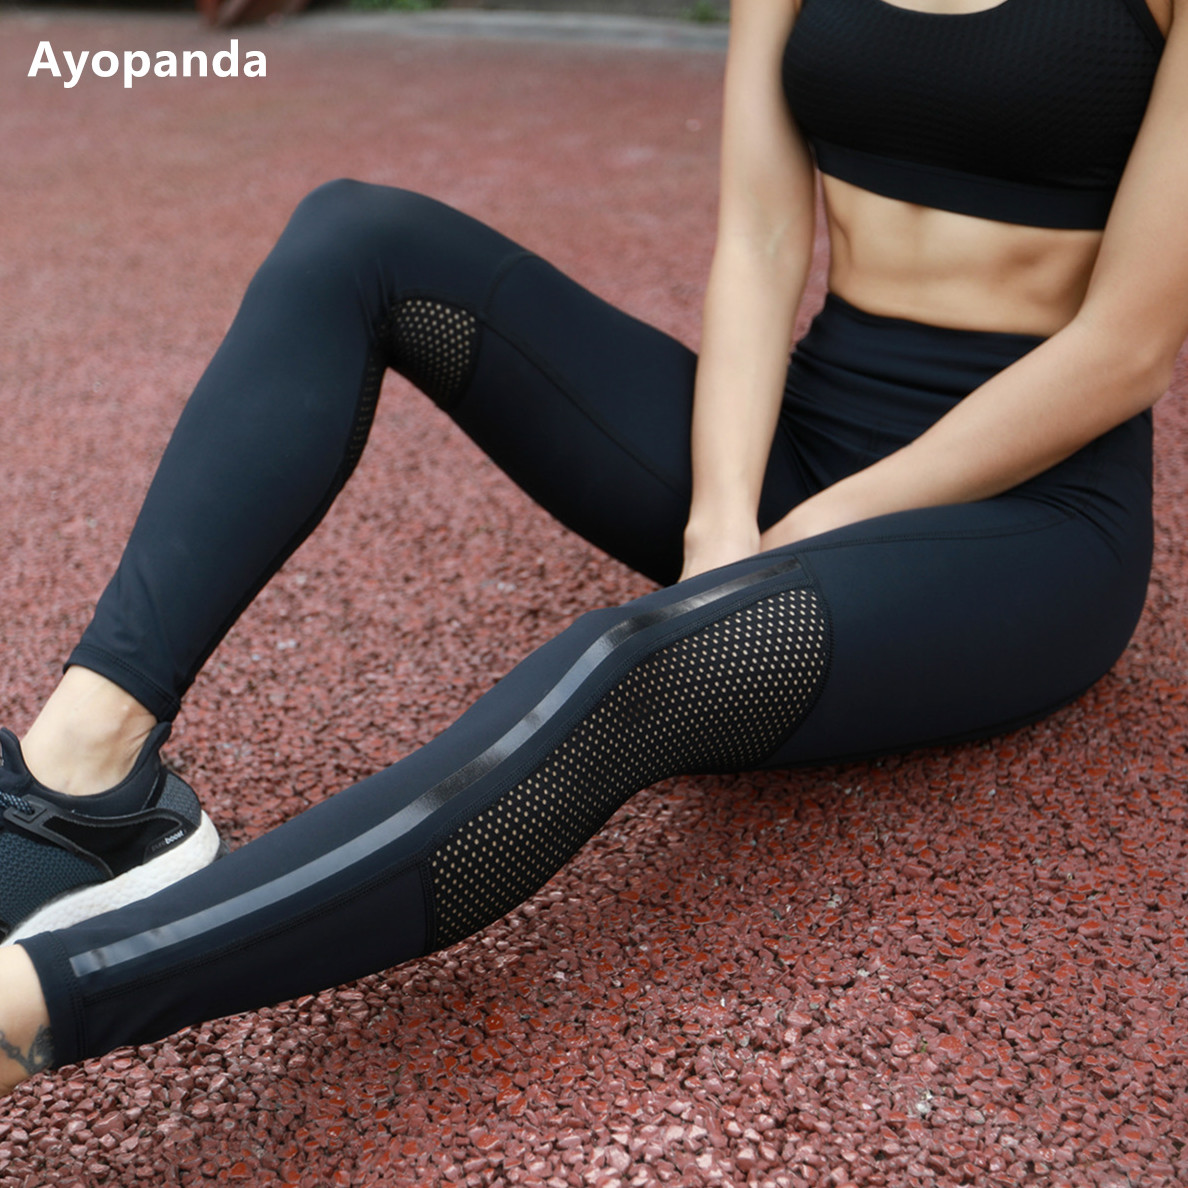 цена Ayopanda 2017 Hot Sale Women Net Hole Yoga pants High Waist Sports Legging Shiny Strap Jogging Tights Fitness Workout Trousers